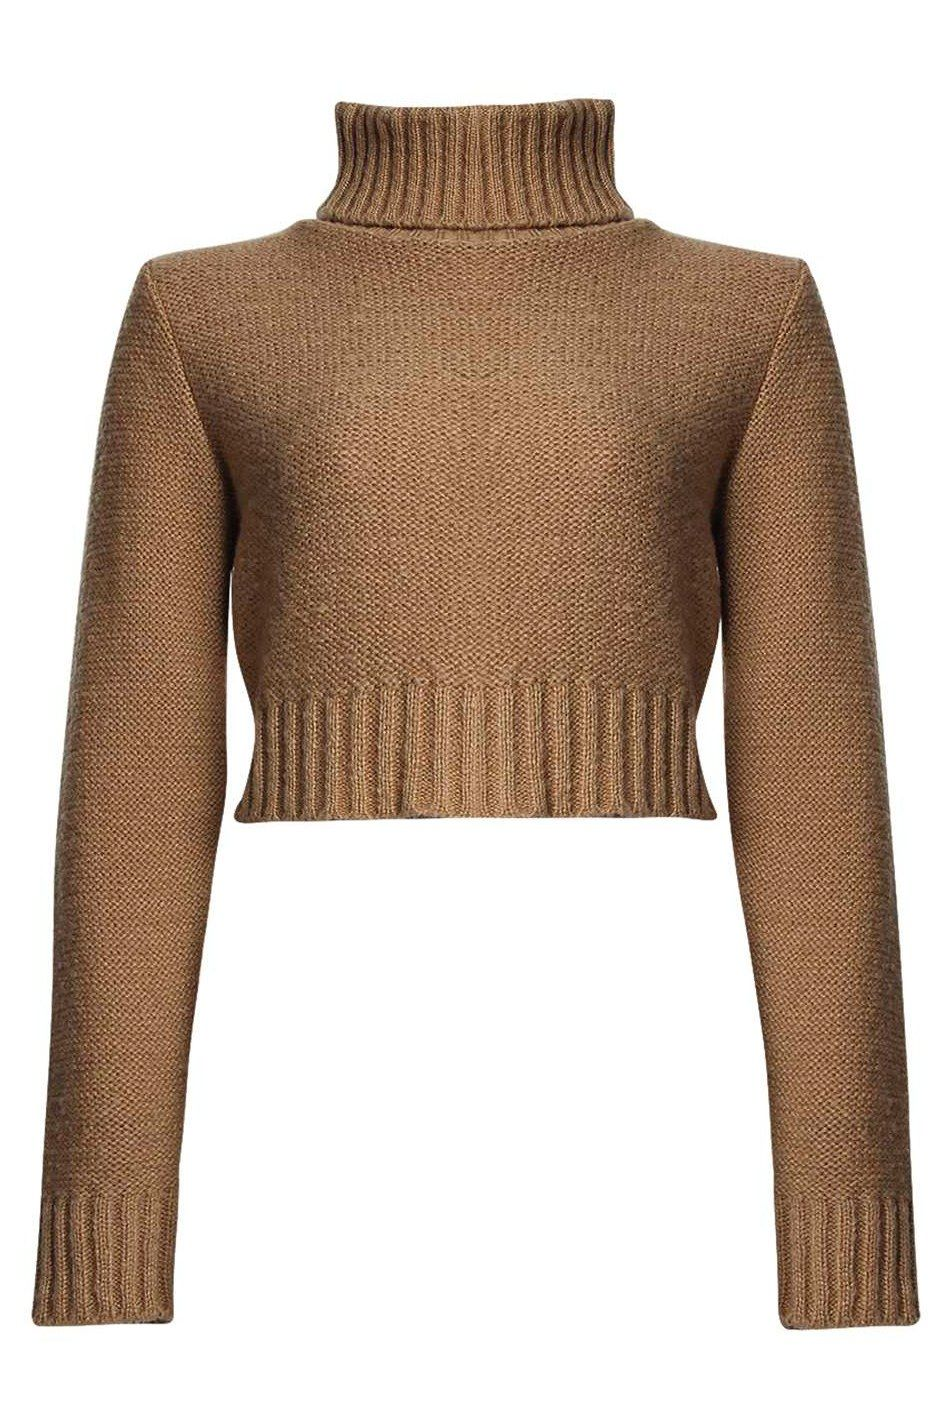 14 of the Coolest Cropped Sweaters to Rock This Fall | Teen and ...